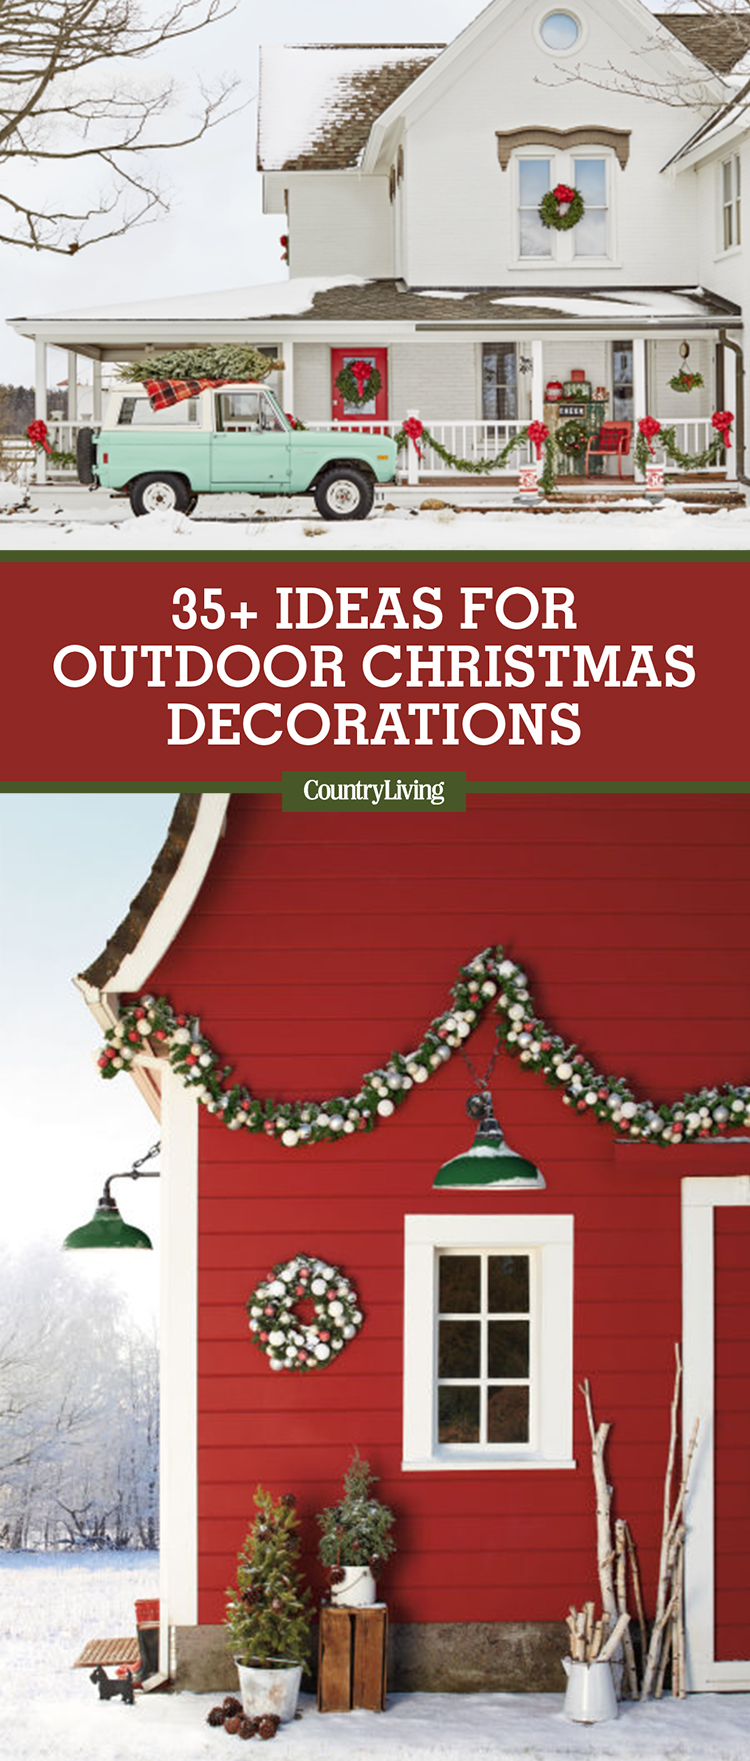 34 outdoor christmas decorations ideas for outside for Idea deco guijarro exterior